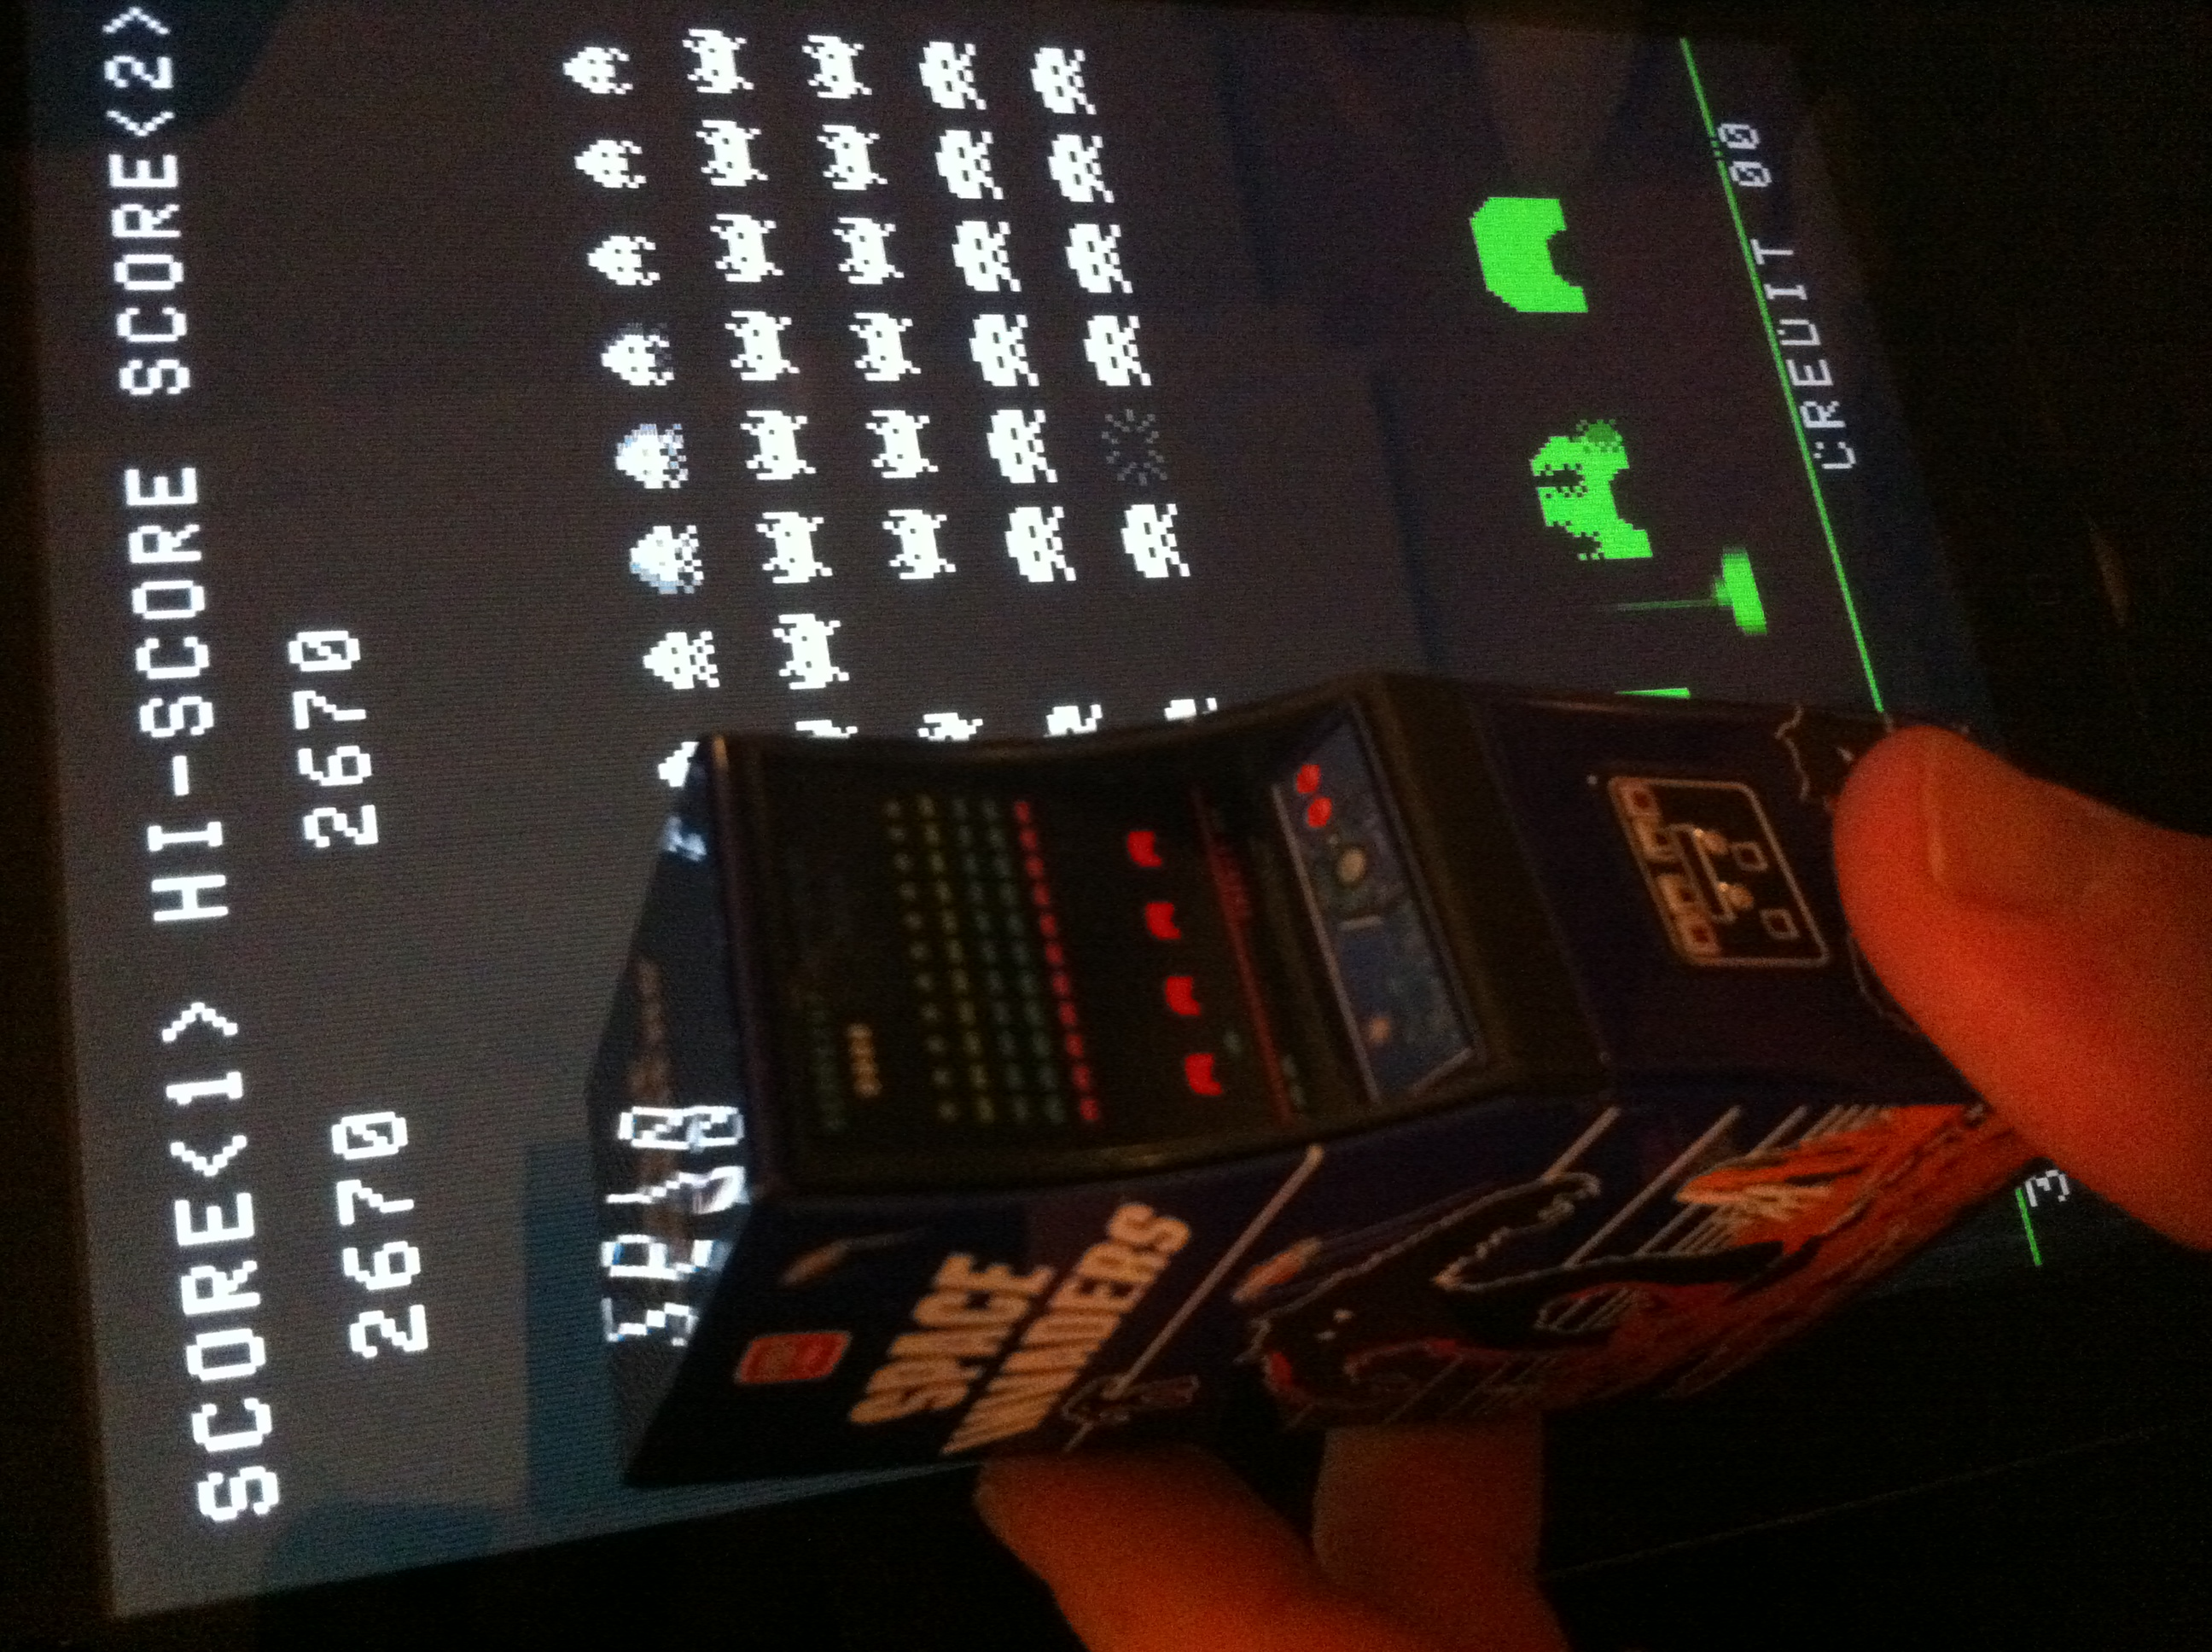 Space Invaders 2,670 points